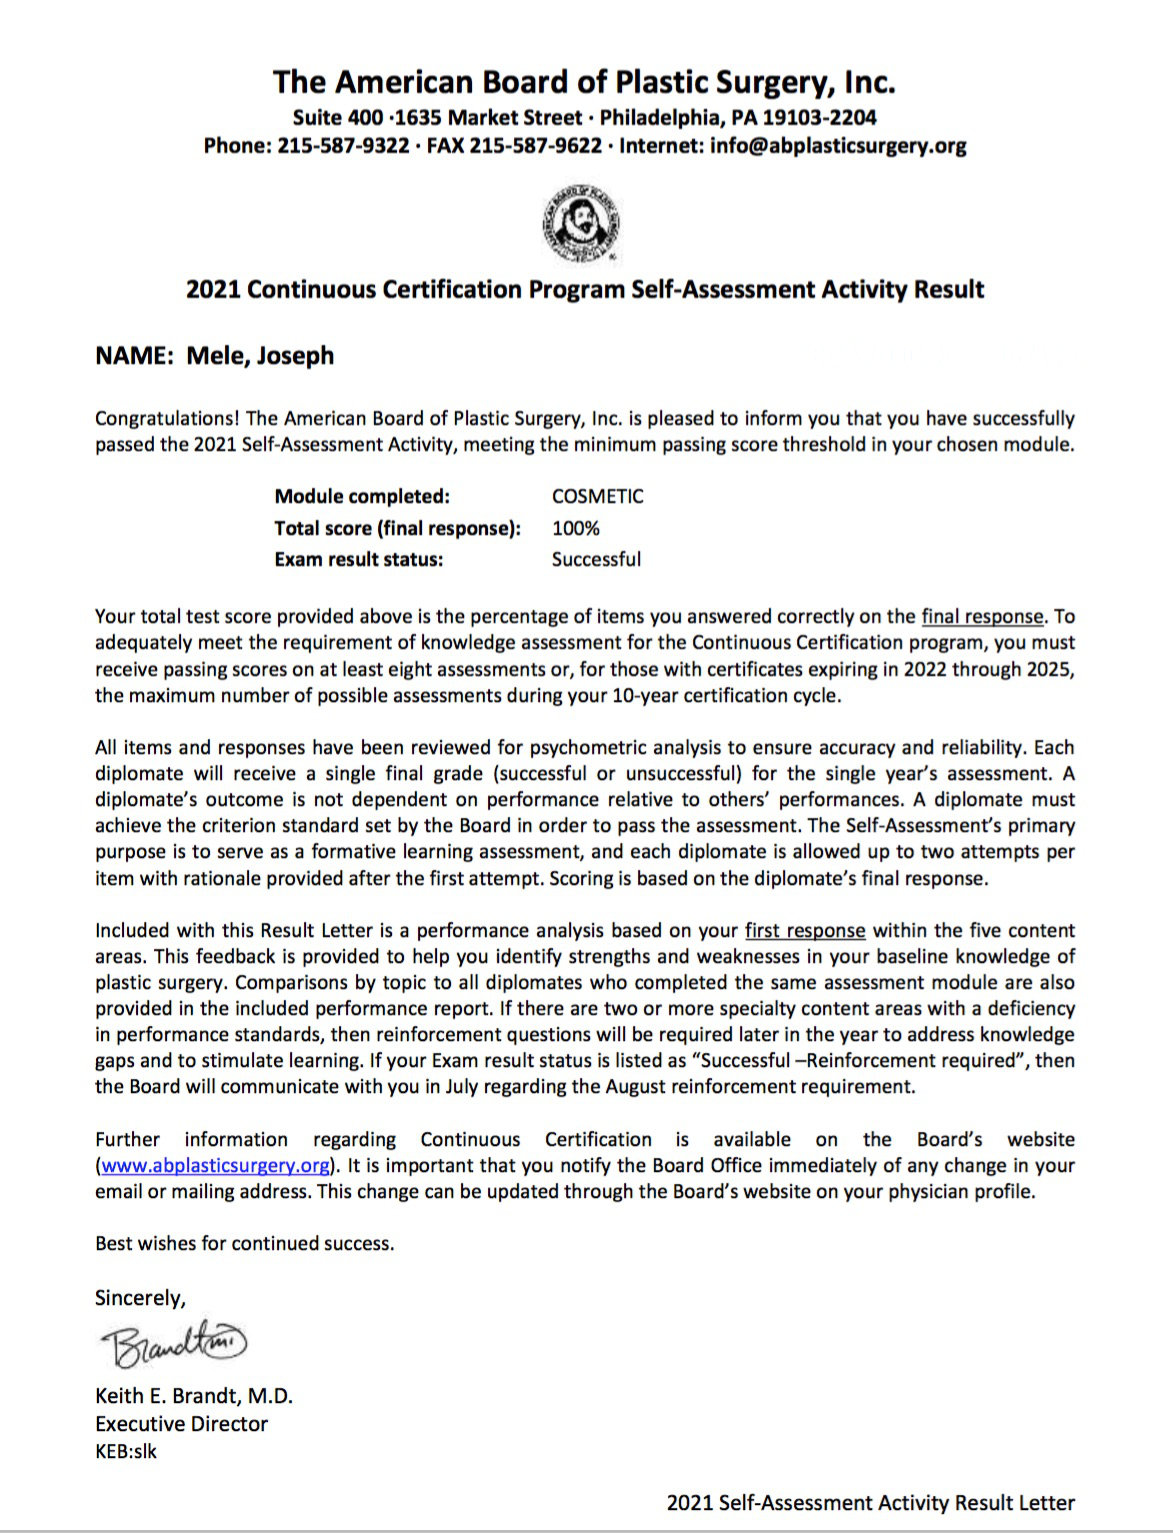 The 2021 American Board of Plastic Surgery Continuous Certification Exam Results